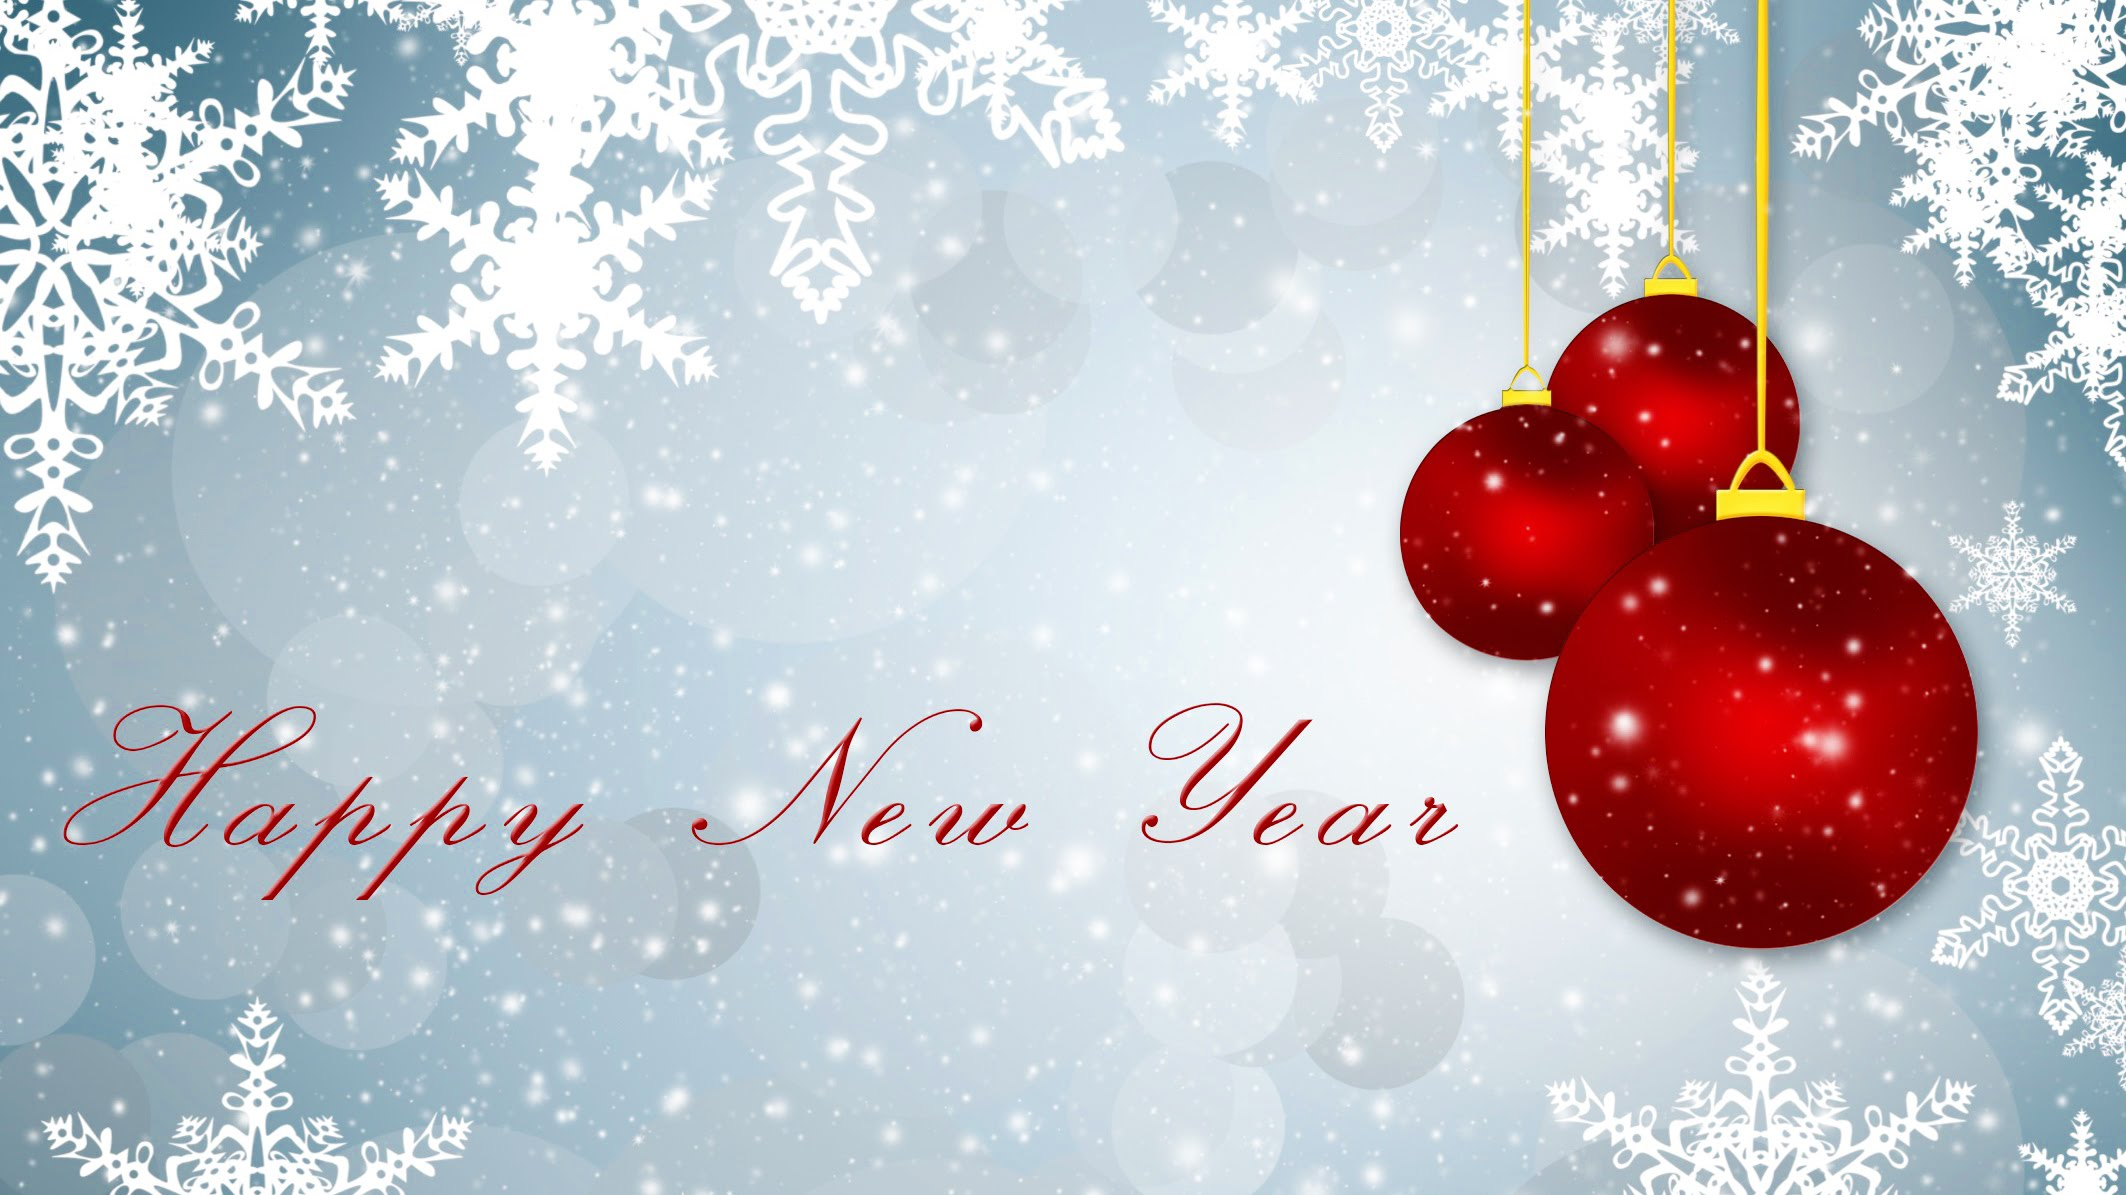 Happy New Year Wishes Red Balls Hd Wallpaper